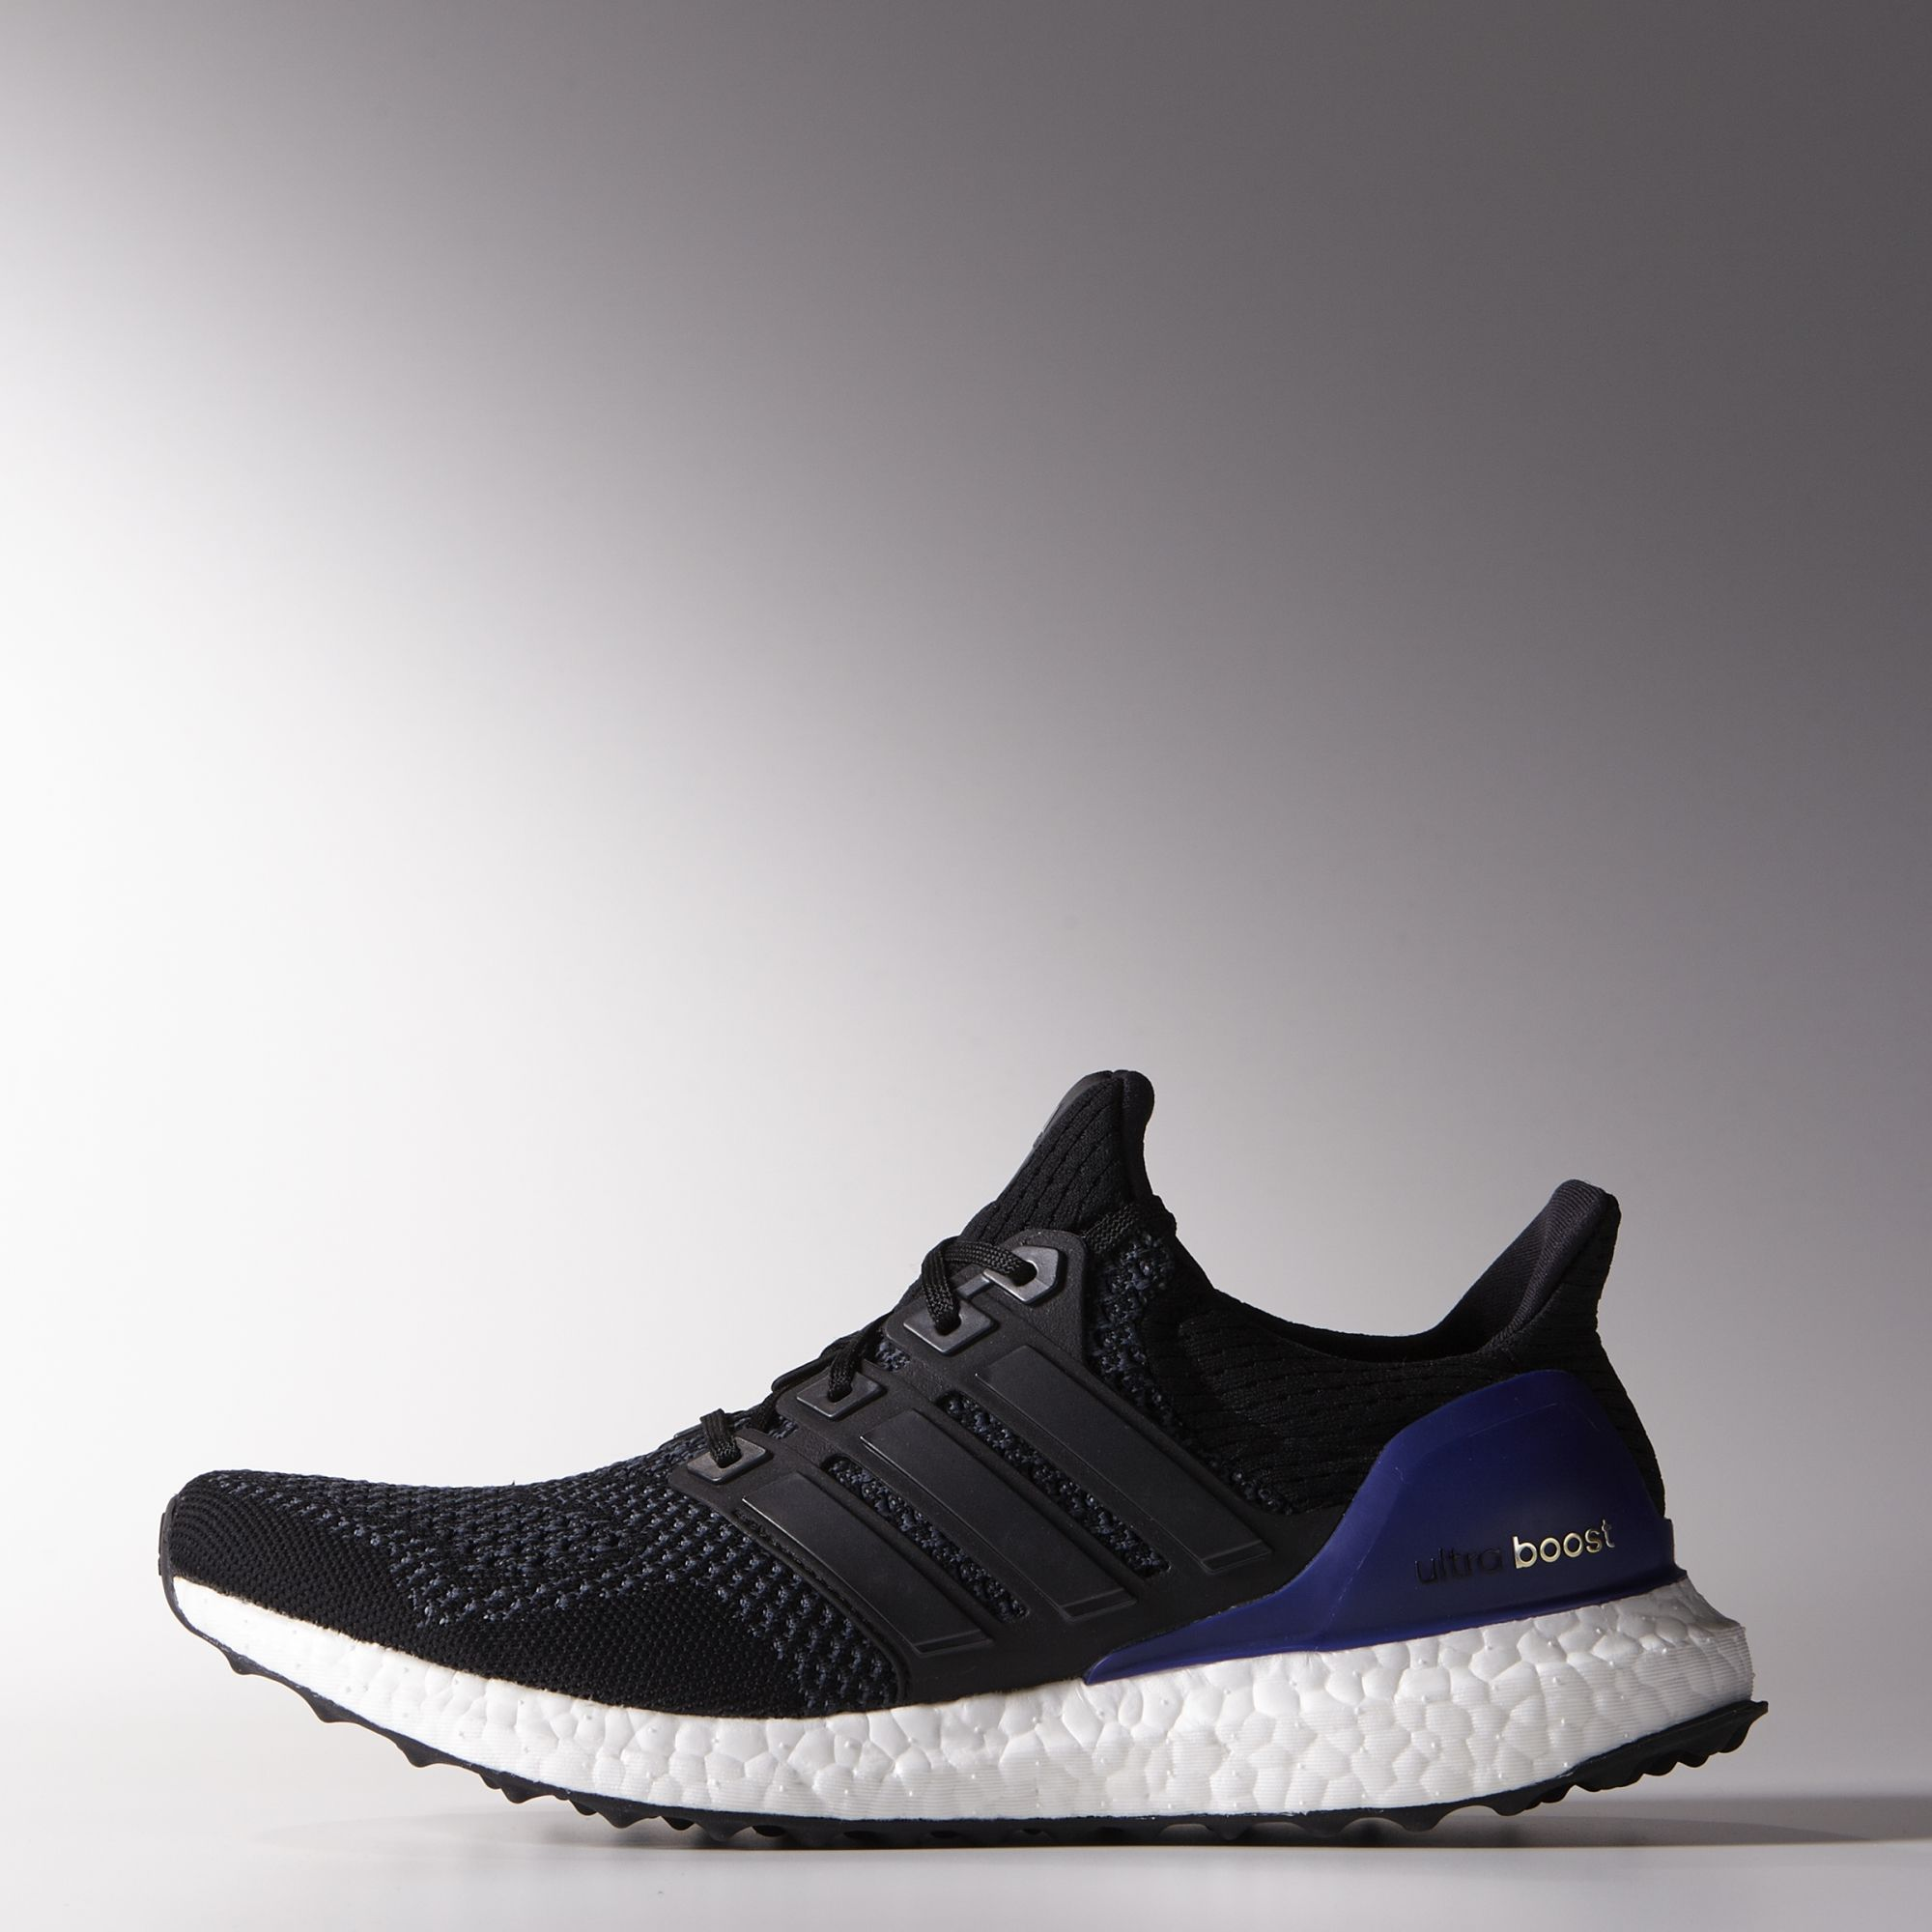 Czech Adidas Ultra Boost - Fitness Photo Gallery 36700064 Image 36724128 Adidas Ultra Boost